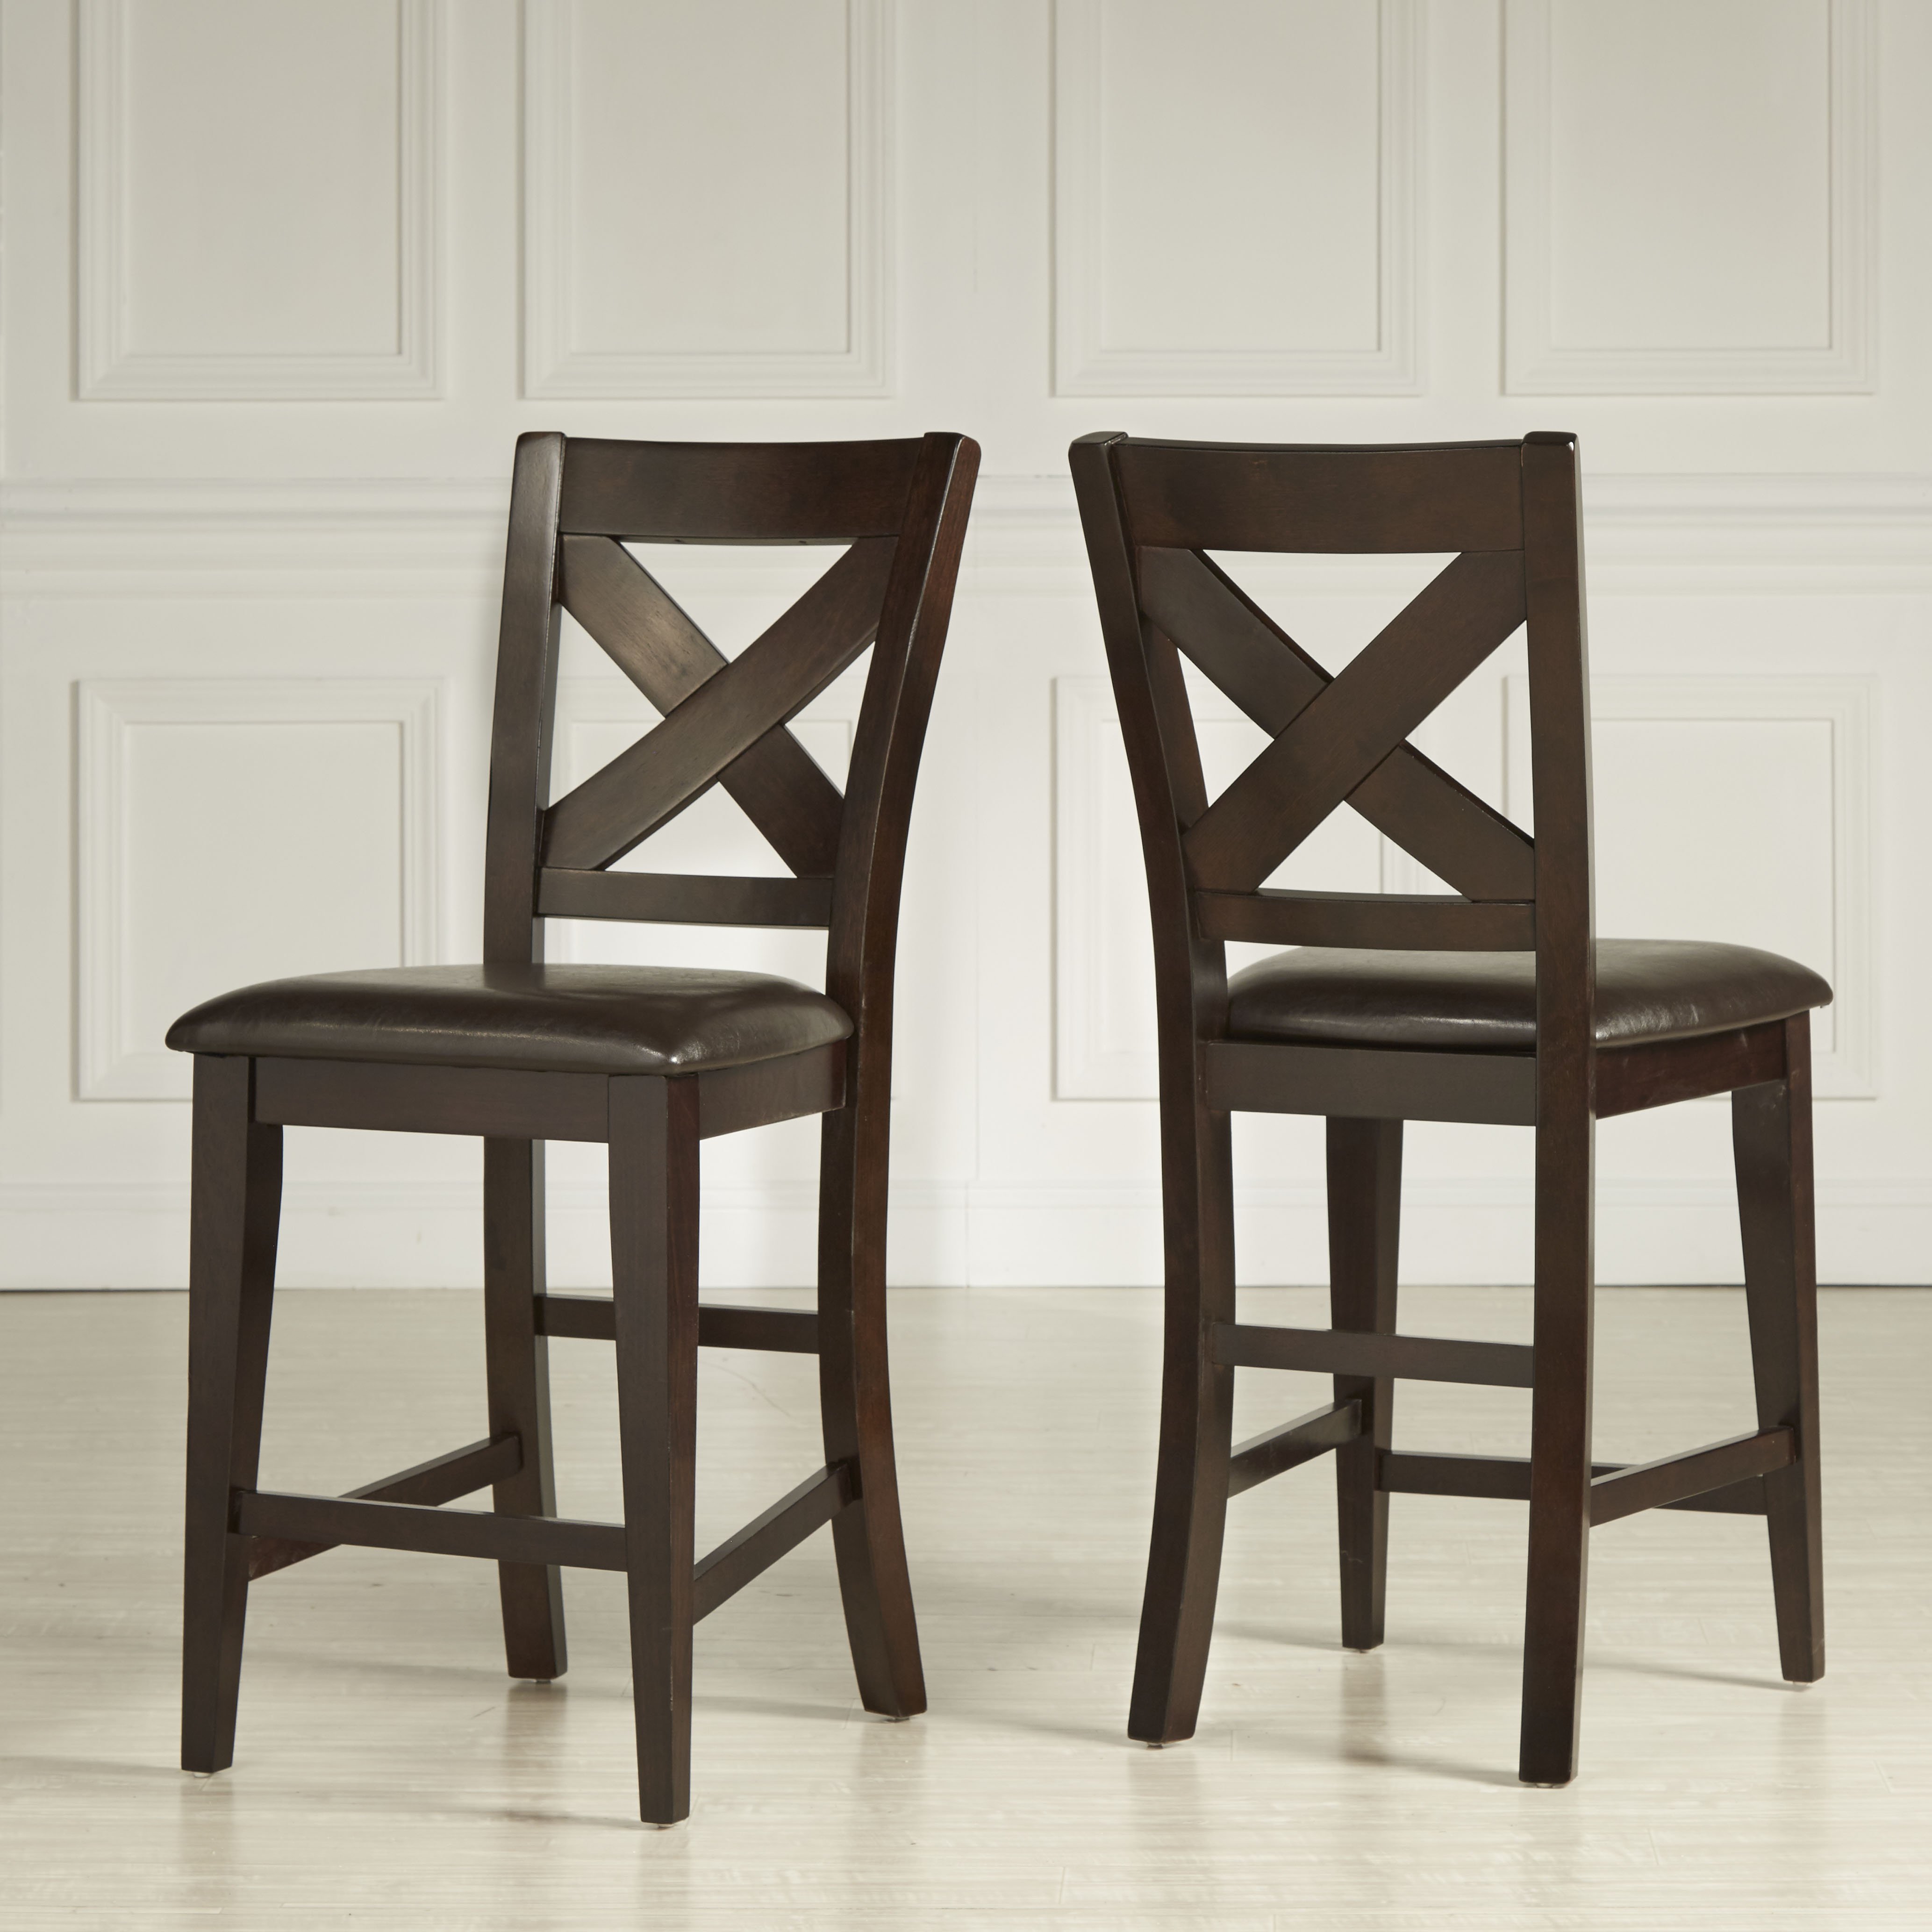 counter height chair revolving manufacturers in ahmedabad chairs weston home set of 2 warm merlot